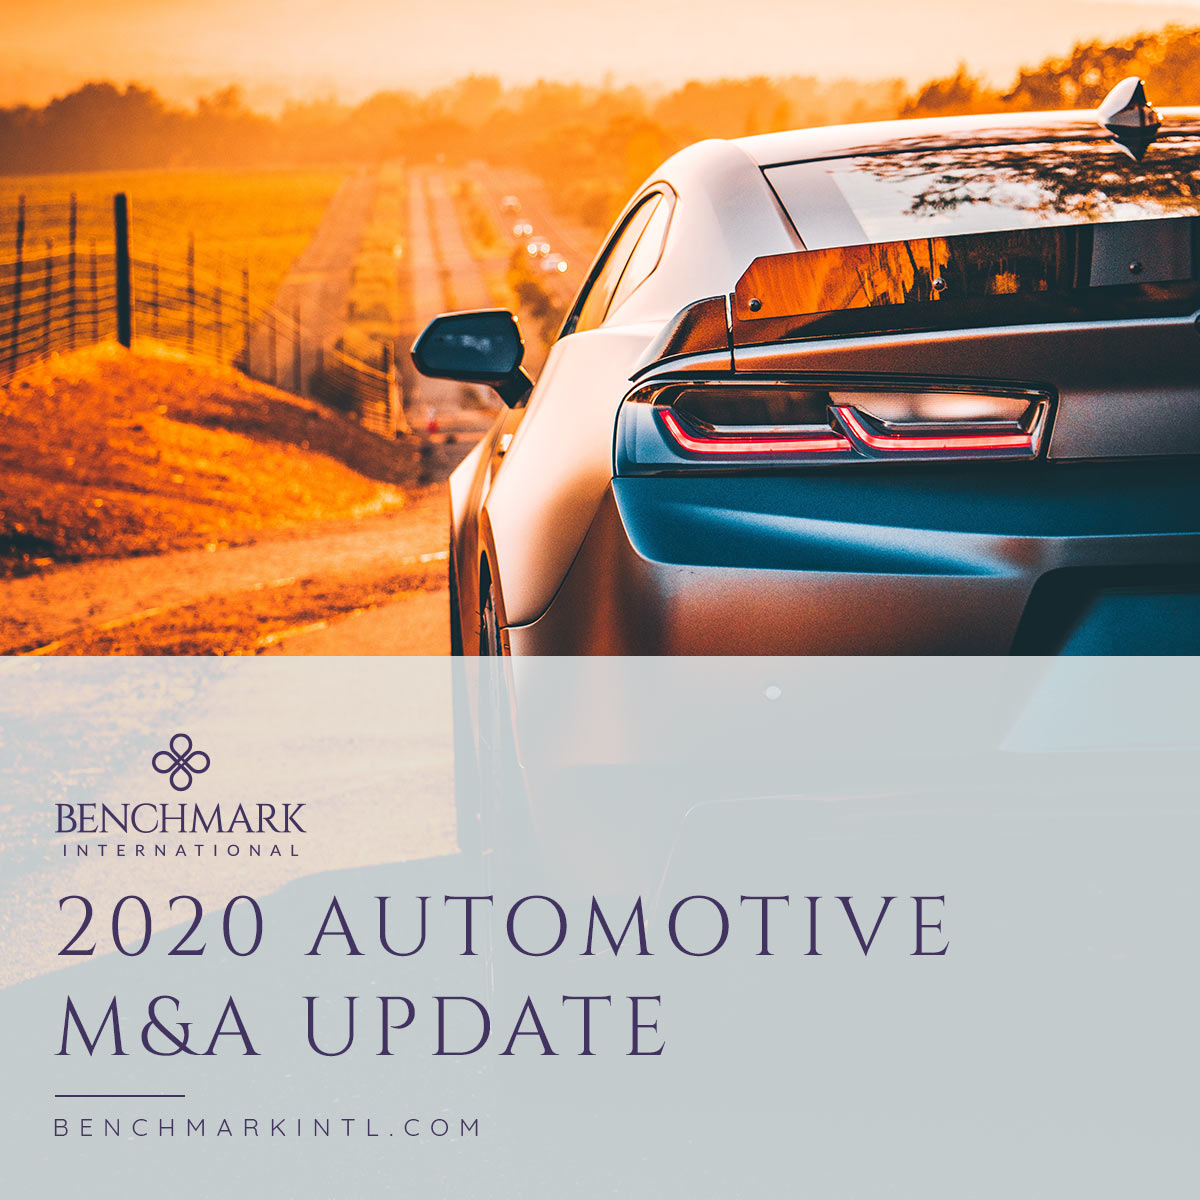 2020_Automotive_M&A_Update_Social